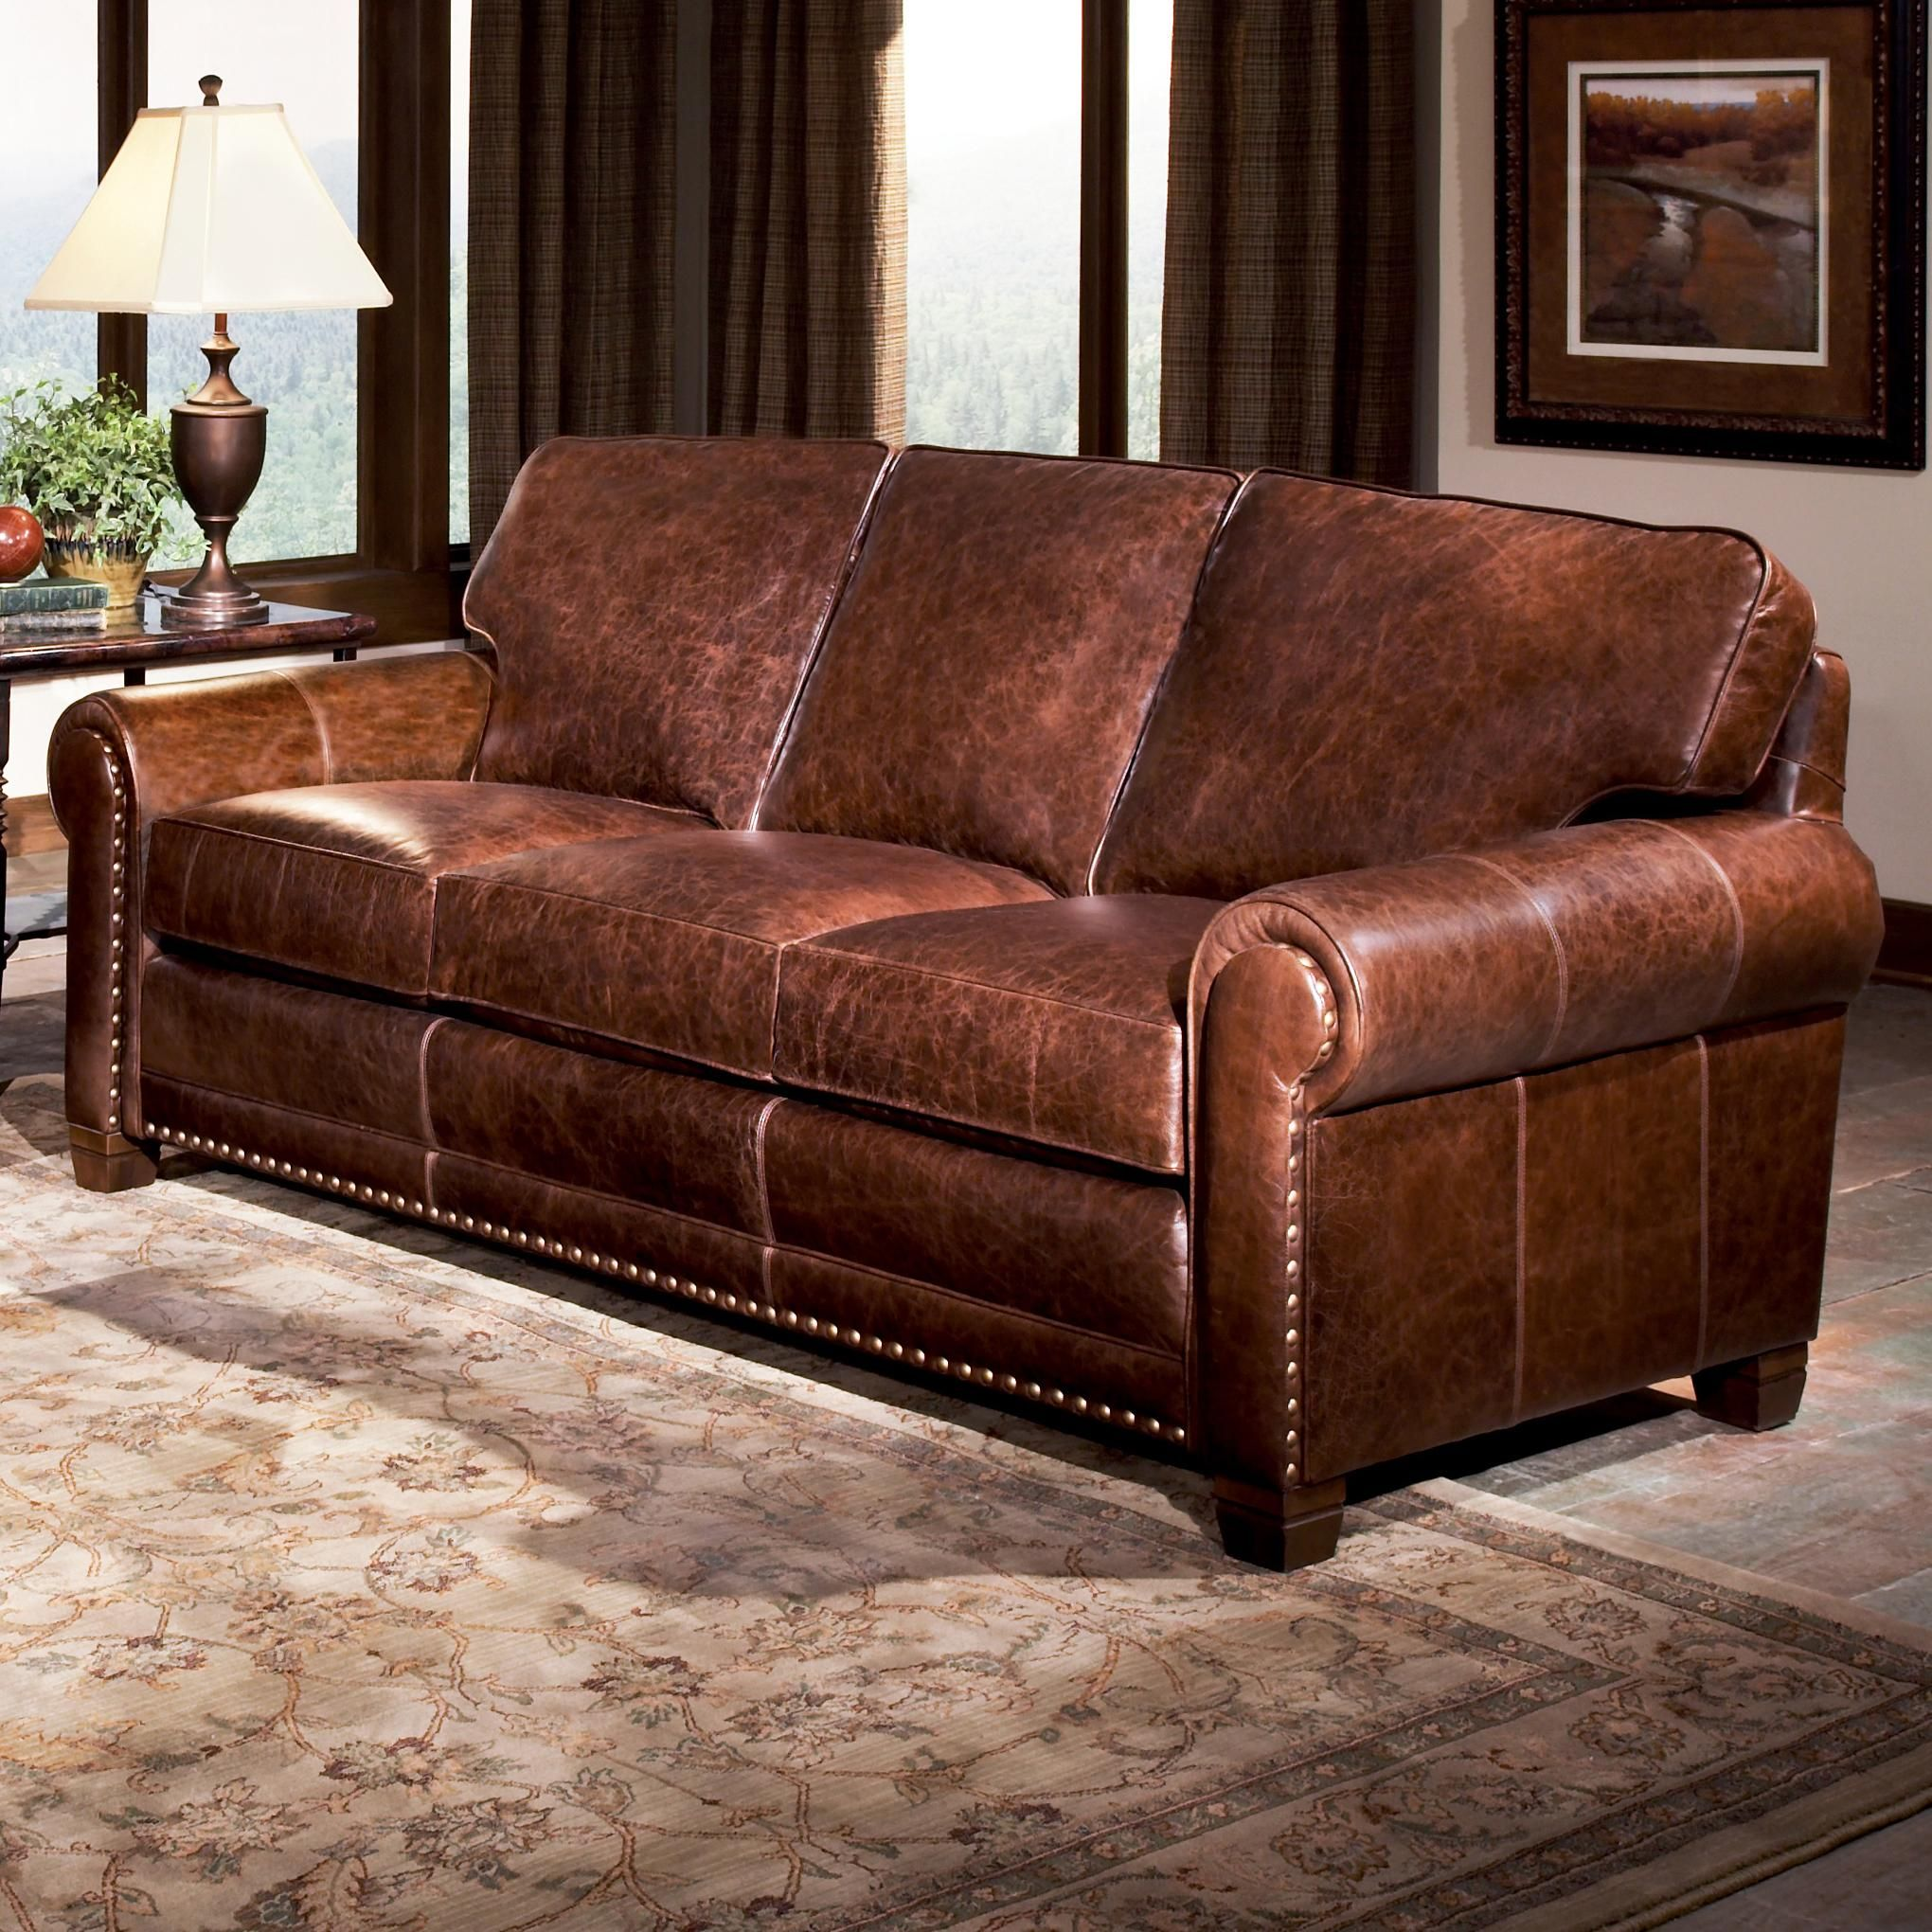 ... Brothers 393 Traditional Stationary Sofa At Saugerties Furniture Mart    Your Poughkeepsie, Kingston, And Albany, New York Furniture U0026 Mattress Store